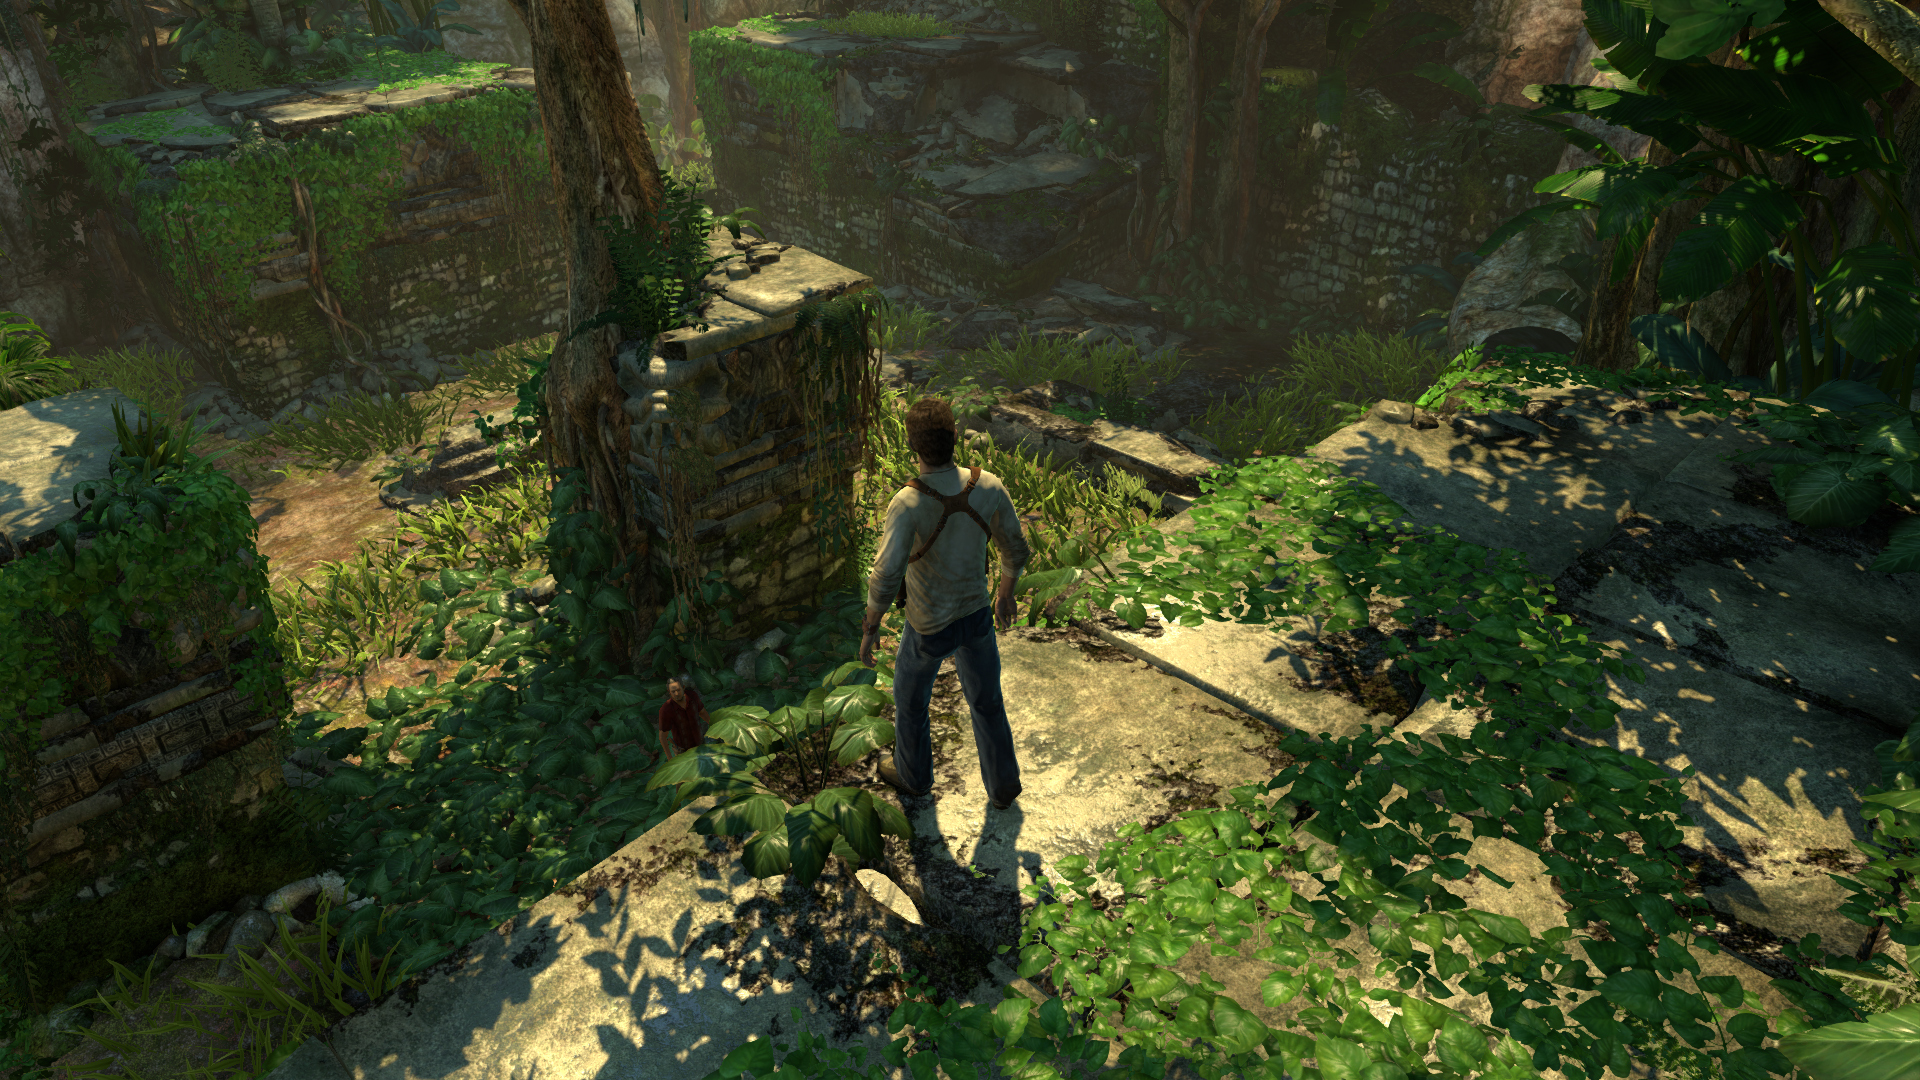 uncharted_thenathandr26q6d.jpg